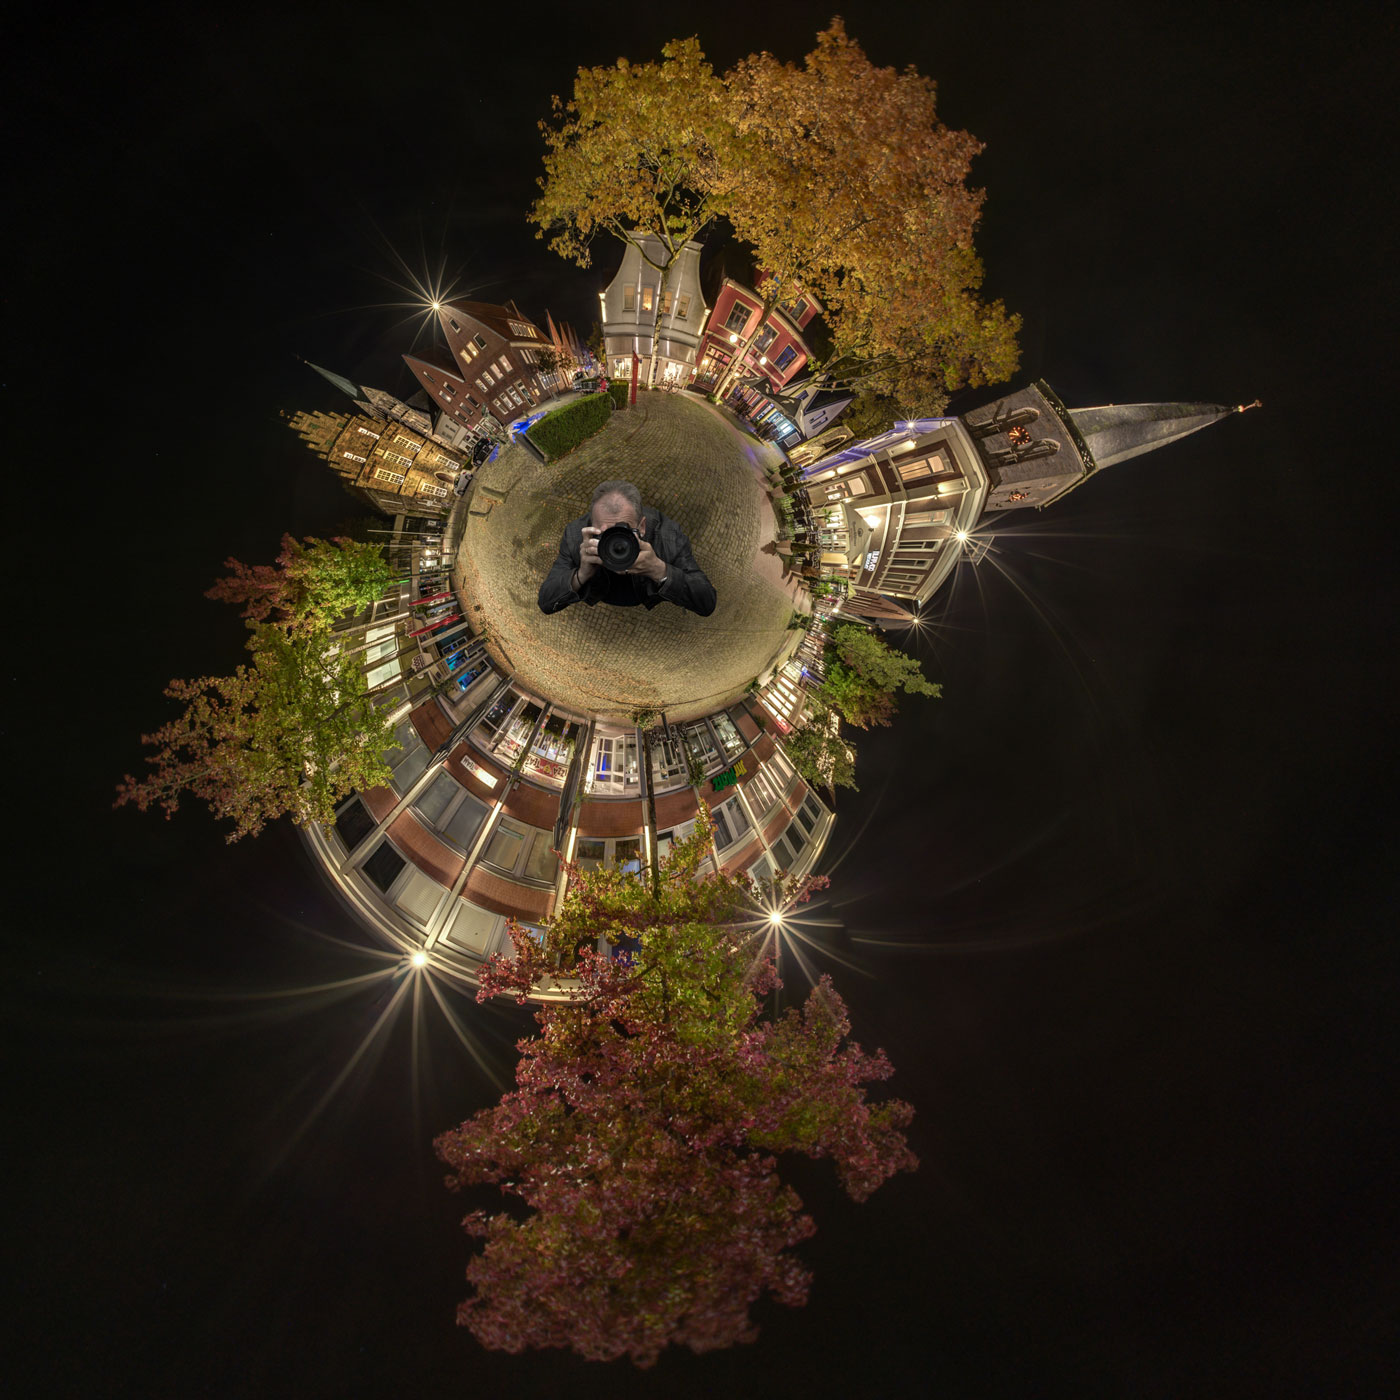 Little Planet Schüttorf